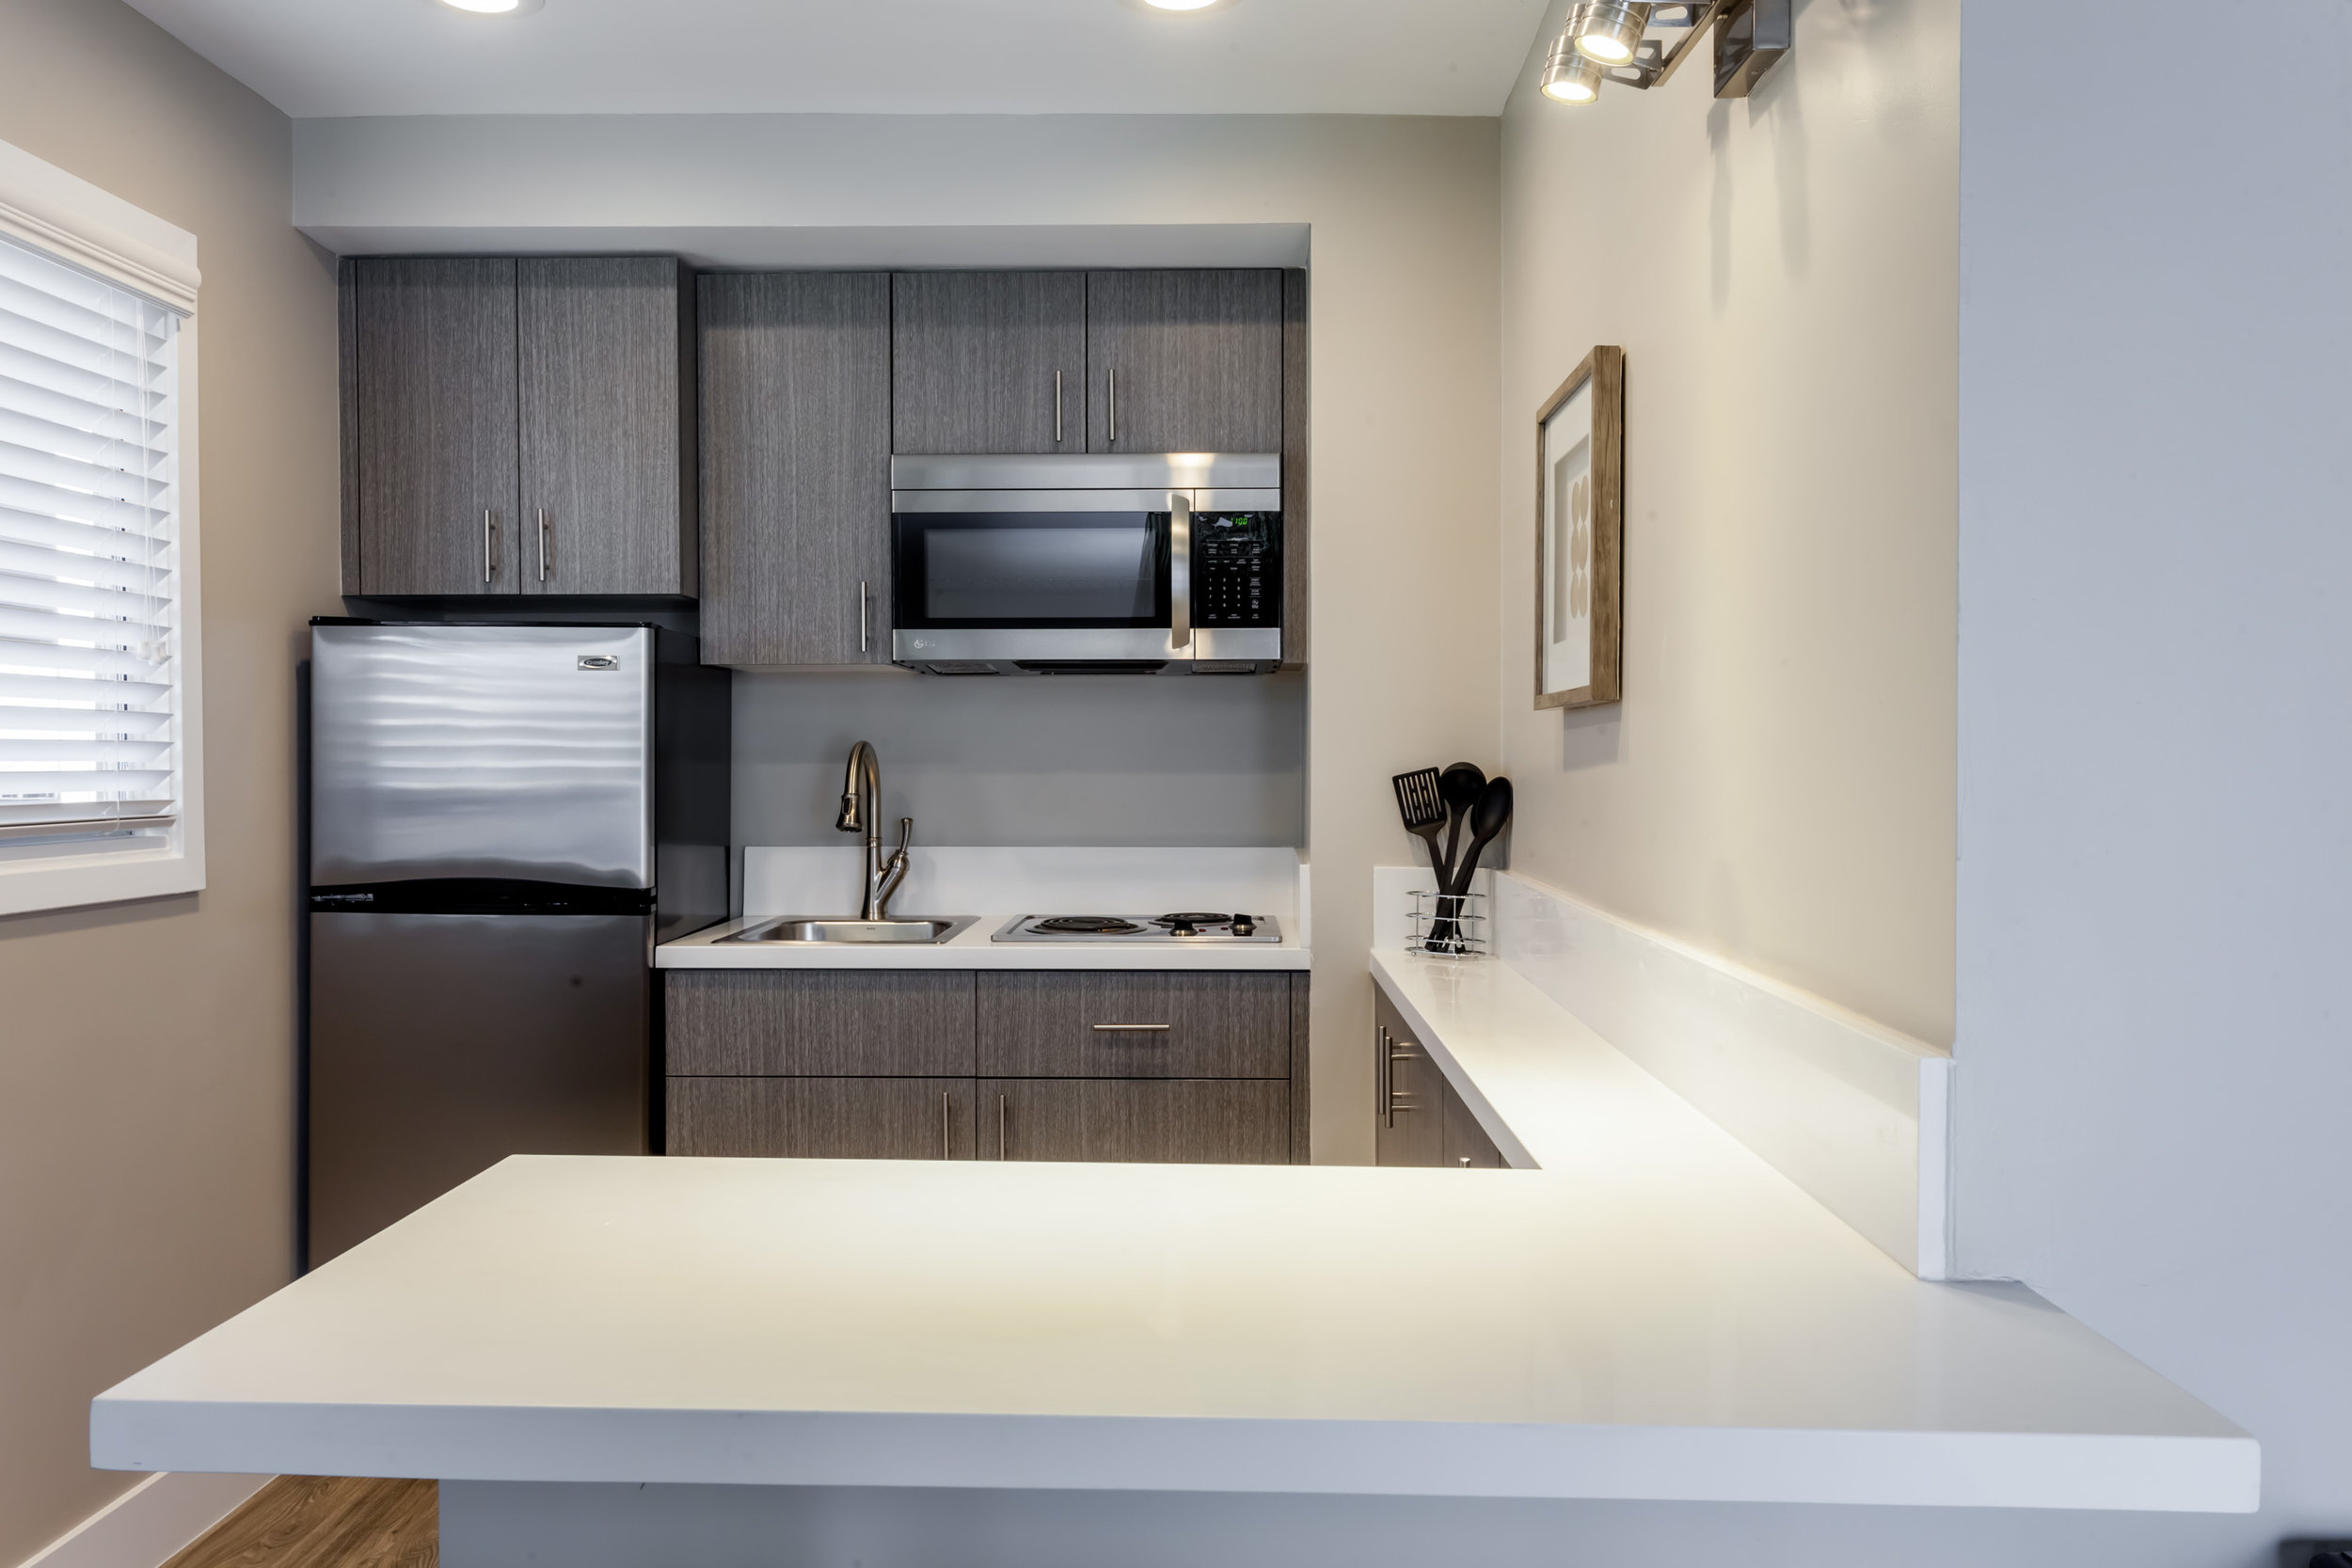 King Suite Kitchen counter